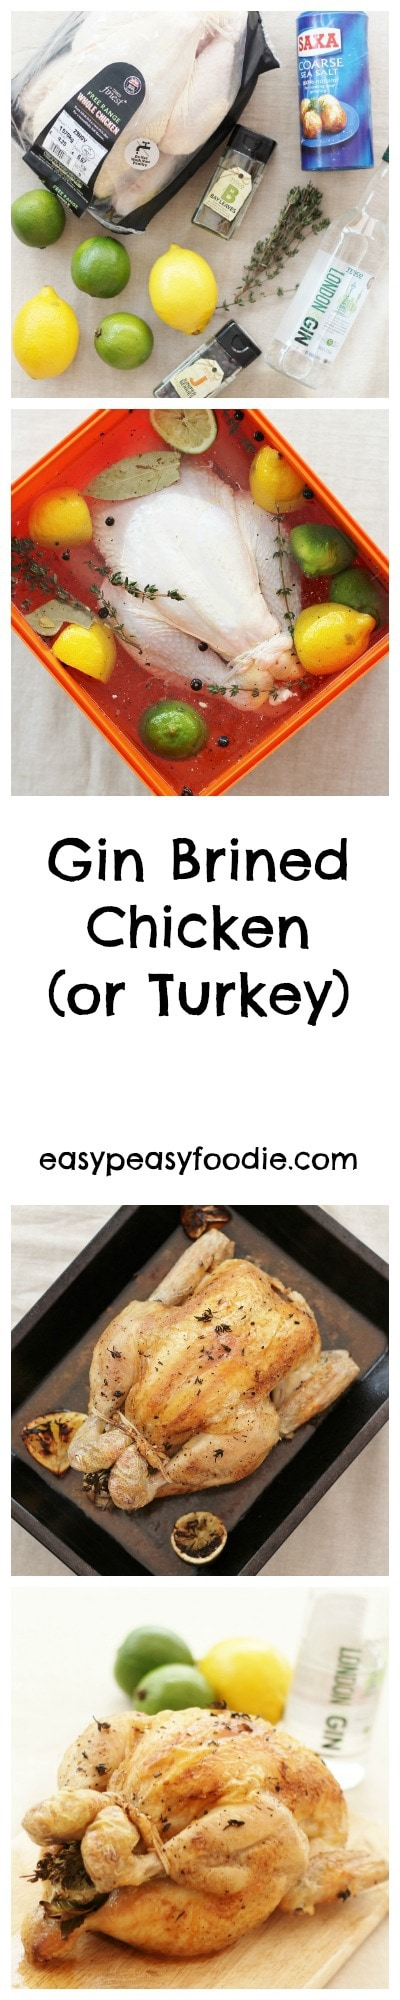 Gin Brined Chicken (or Turkey) - pinnable image for Pinterest